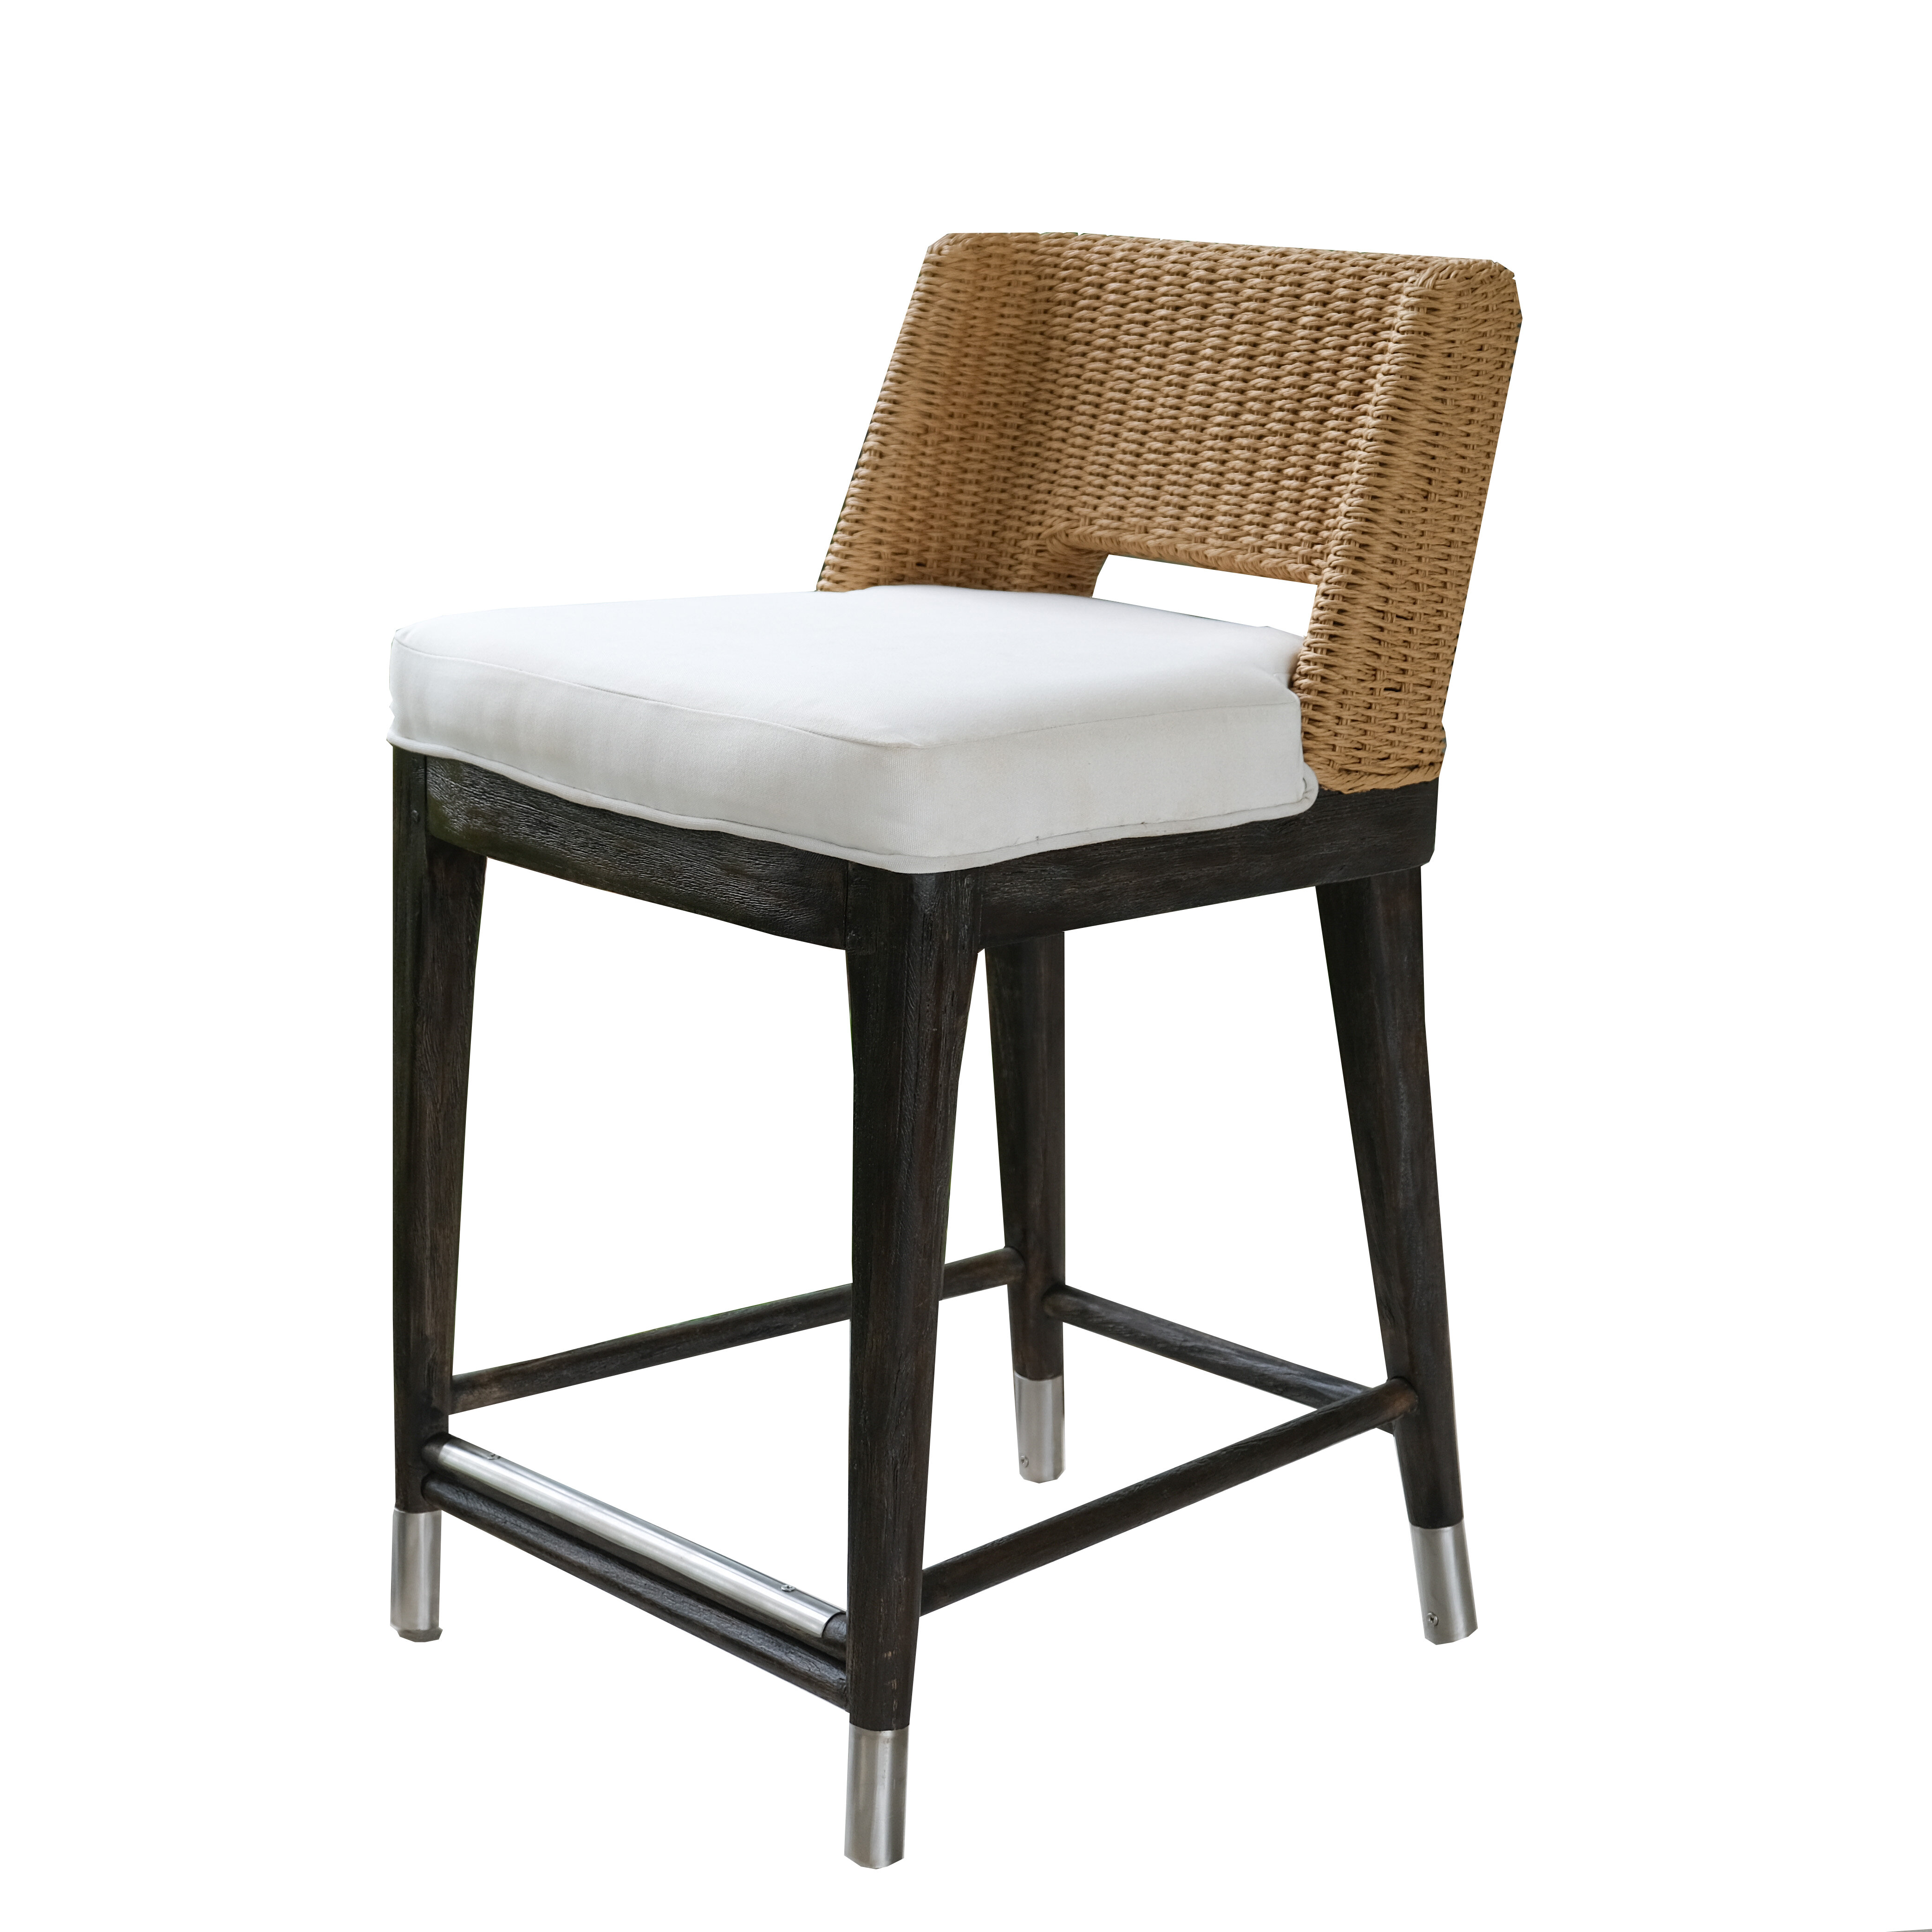 Magnificent Holcomb Roped Outdoor Counter 24 Teak Patio Bar Stool With Cushion Squirreltailoven Fun Painted Chair Ideas Images Squirreltailovenorg